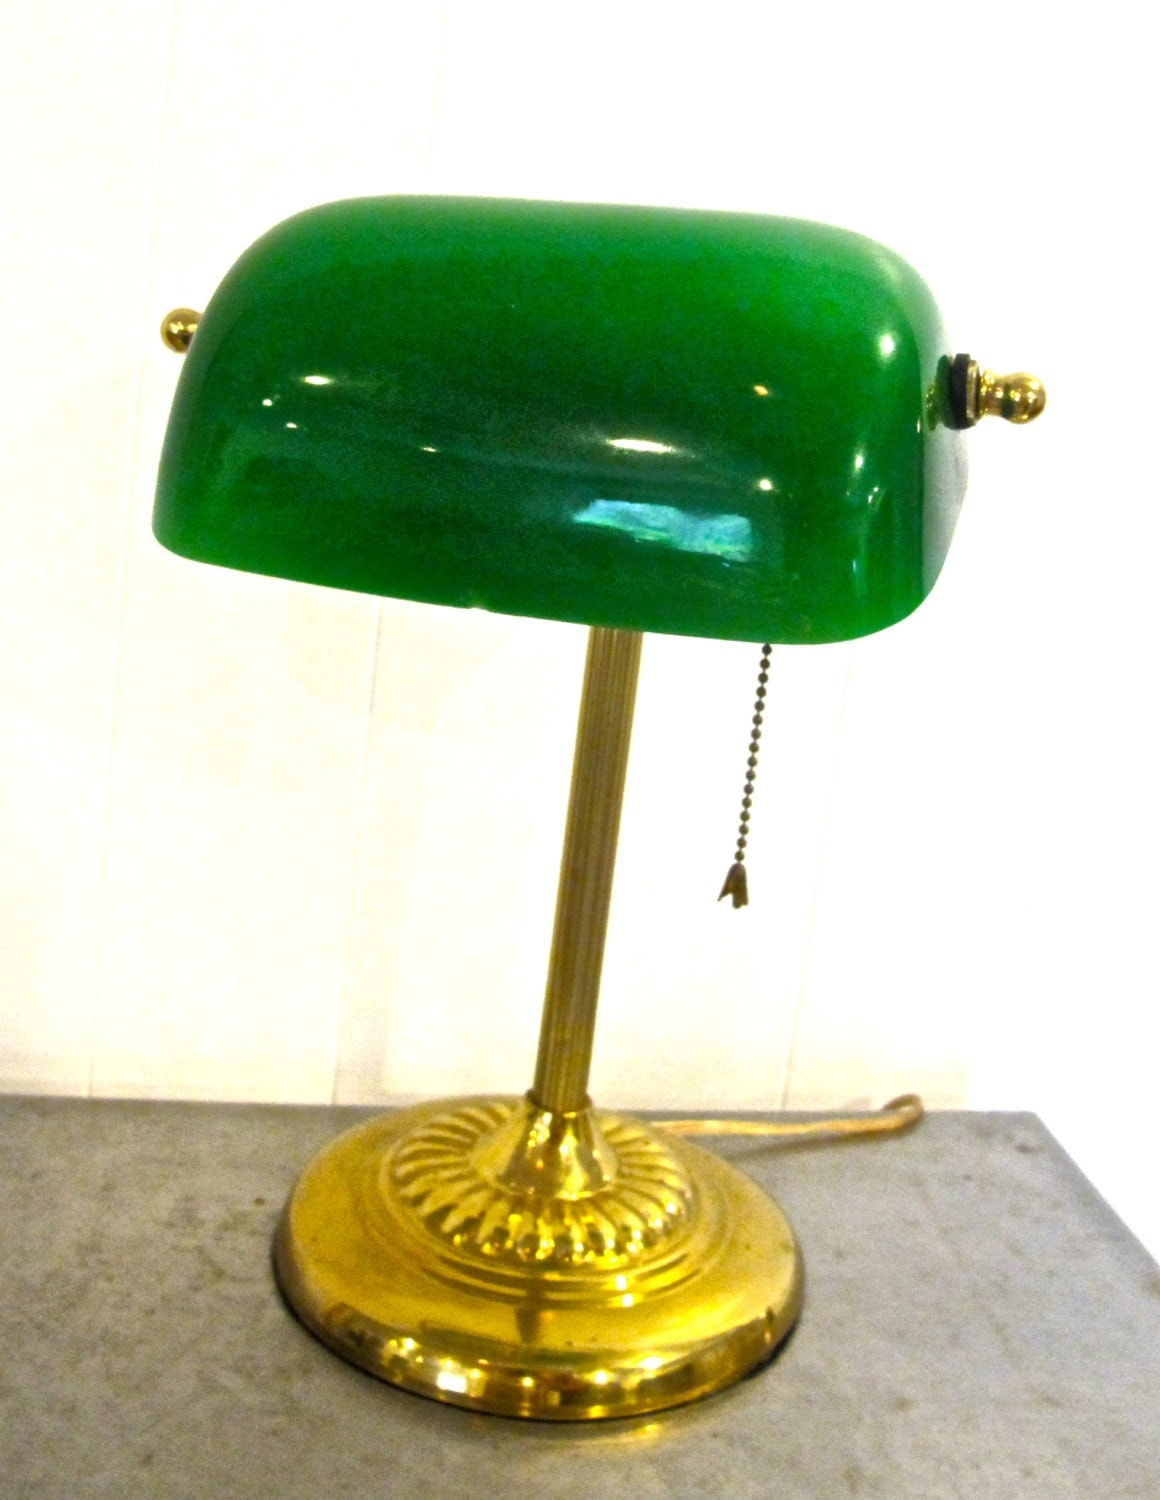 vintage library lamp 1940s-50s green glass desk lamp